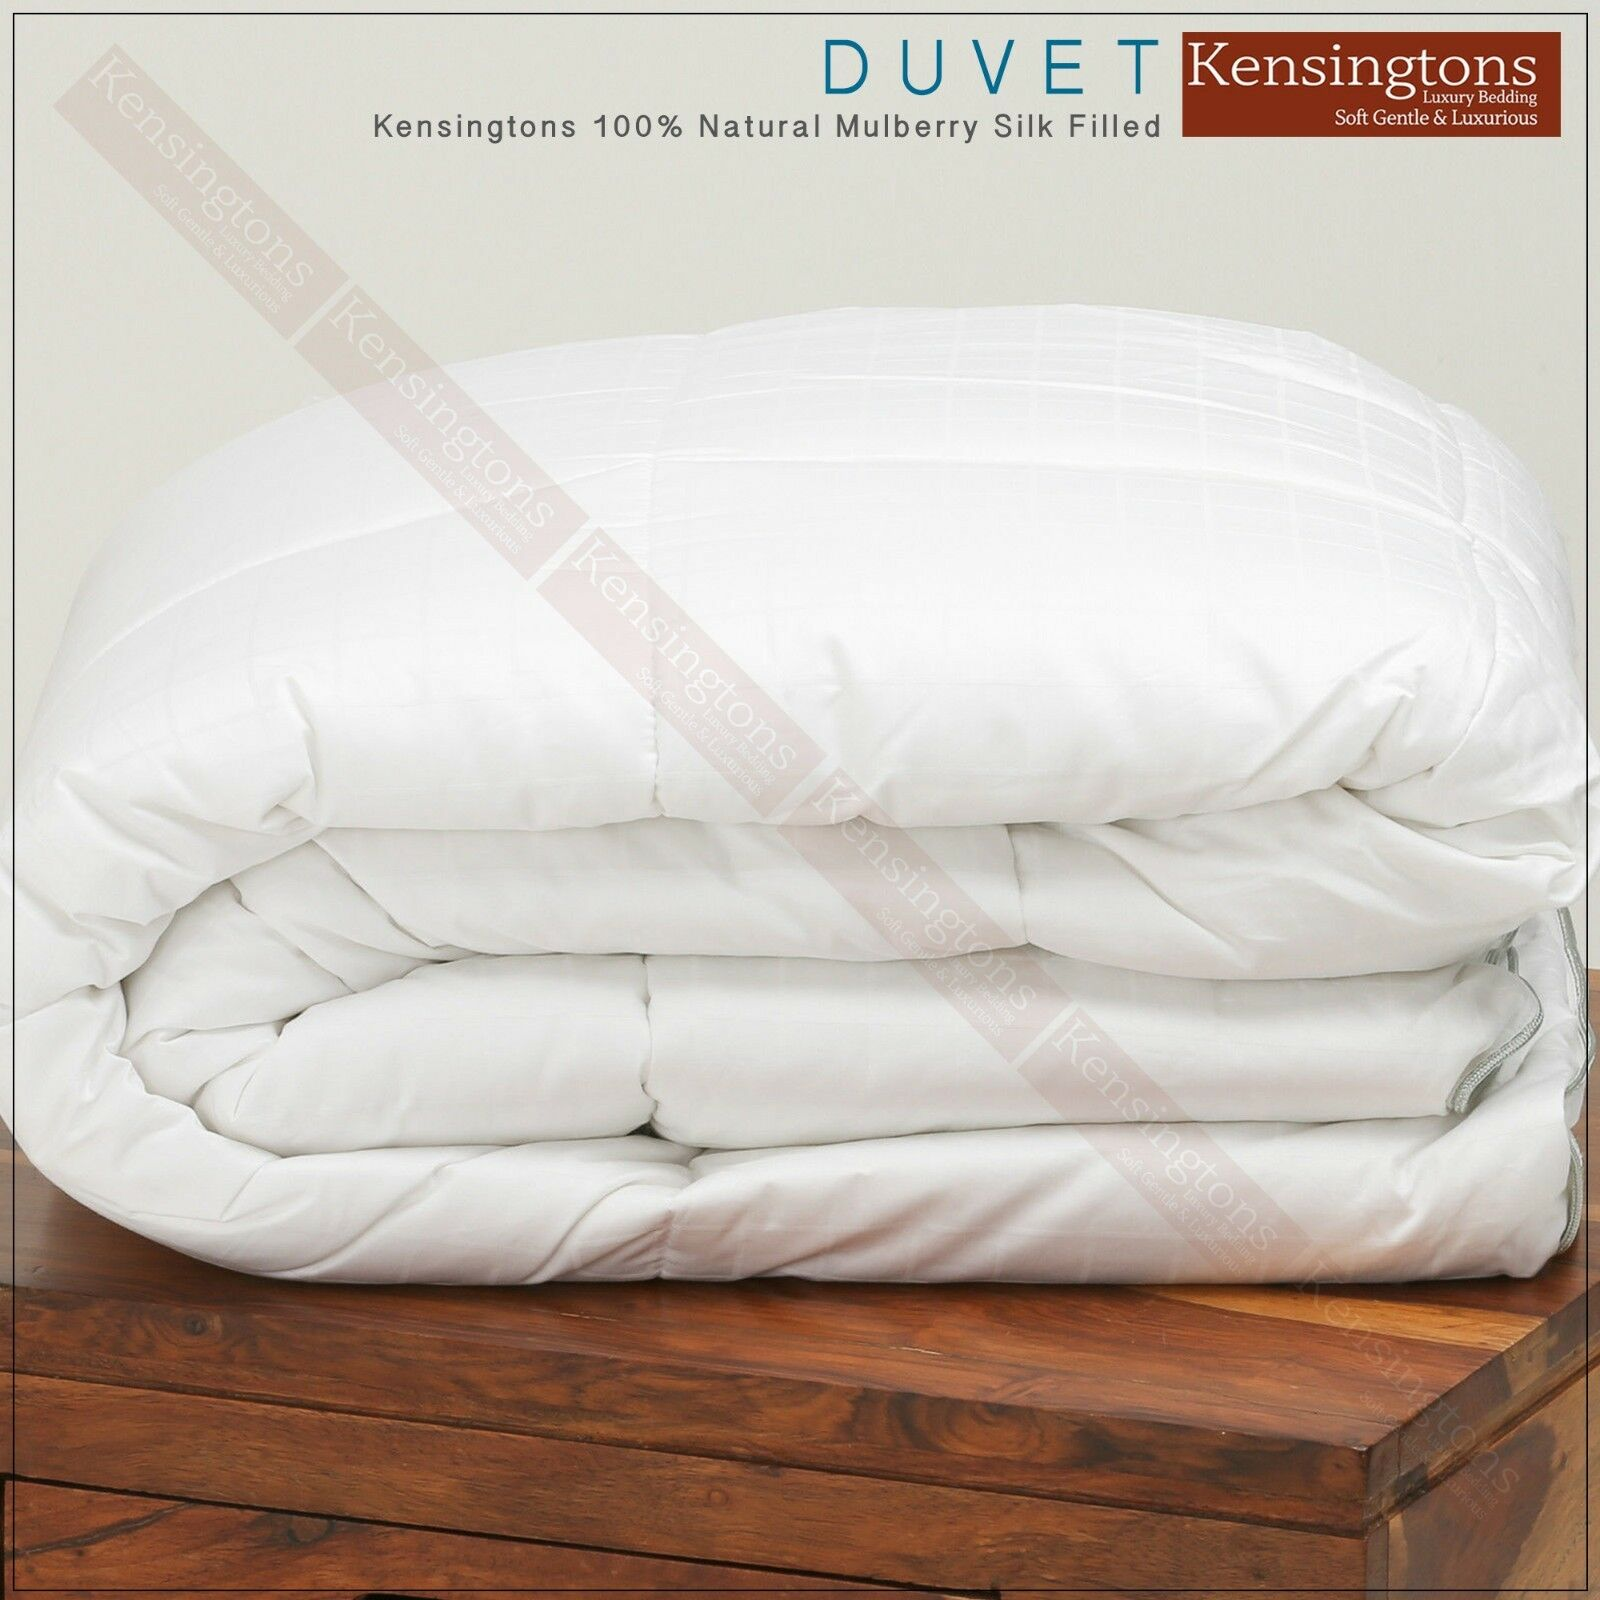 100% Natural Mulberry Silk Filled Egyptian Cotton Cover Duvet All Größes